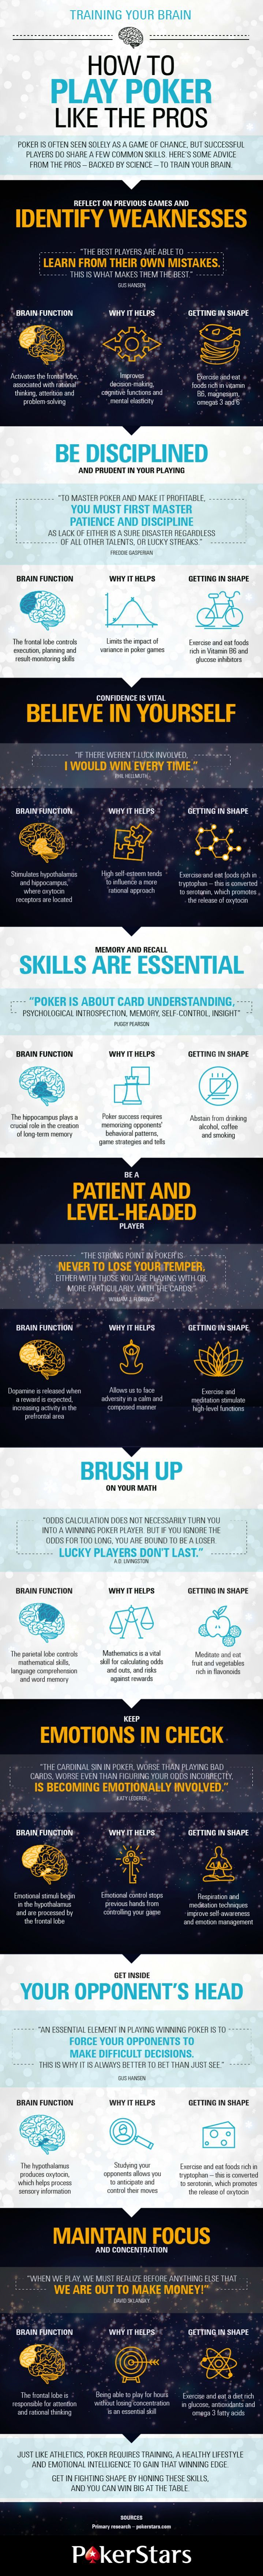 Training Your Brain - How to Play Poker Like the Pros #infographic #HowTo #Poker